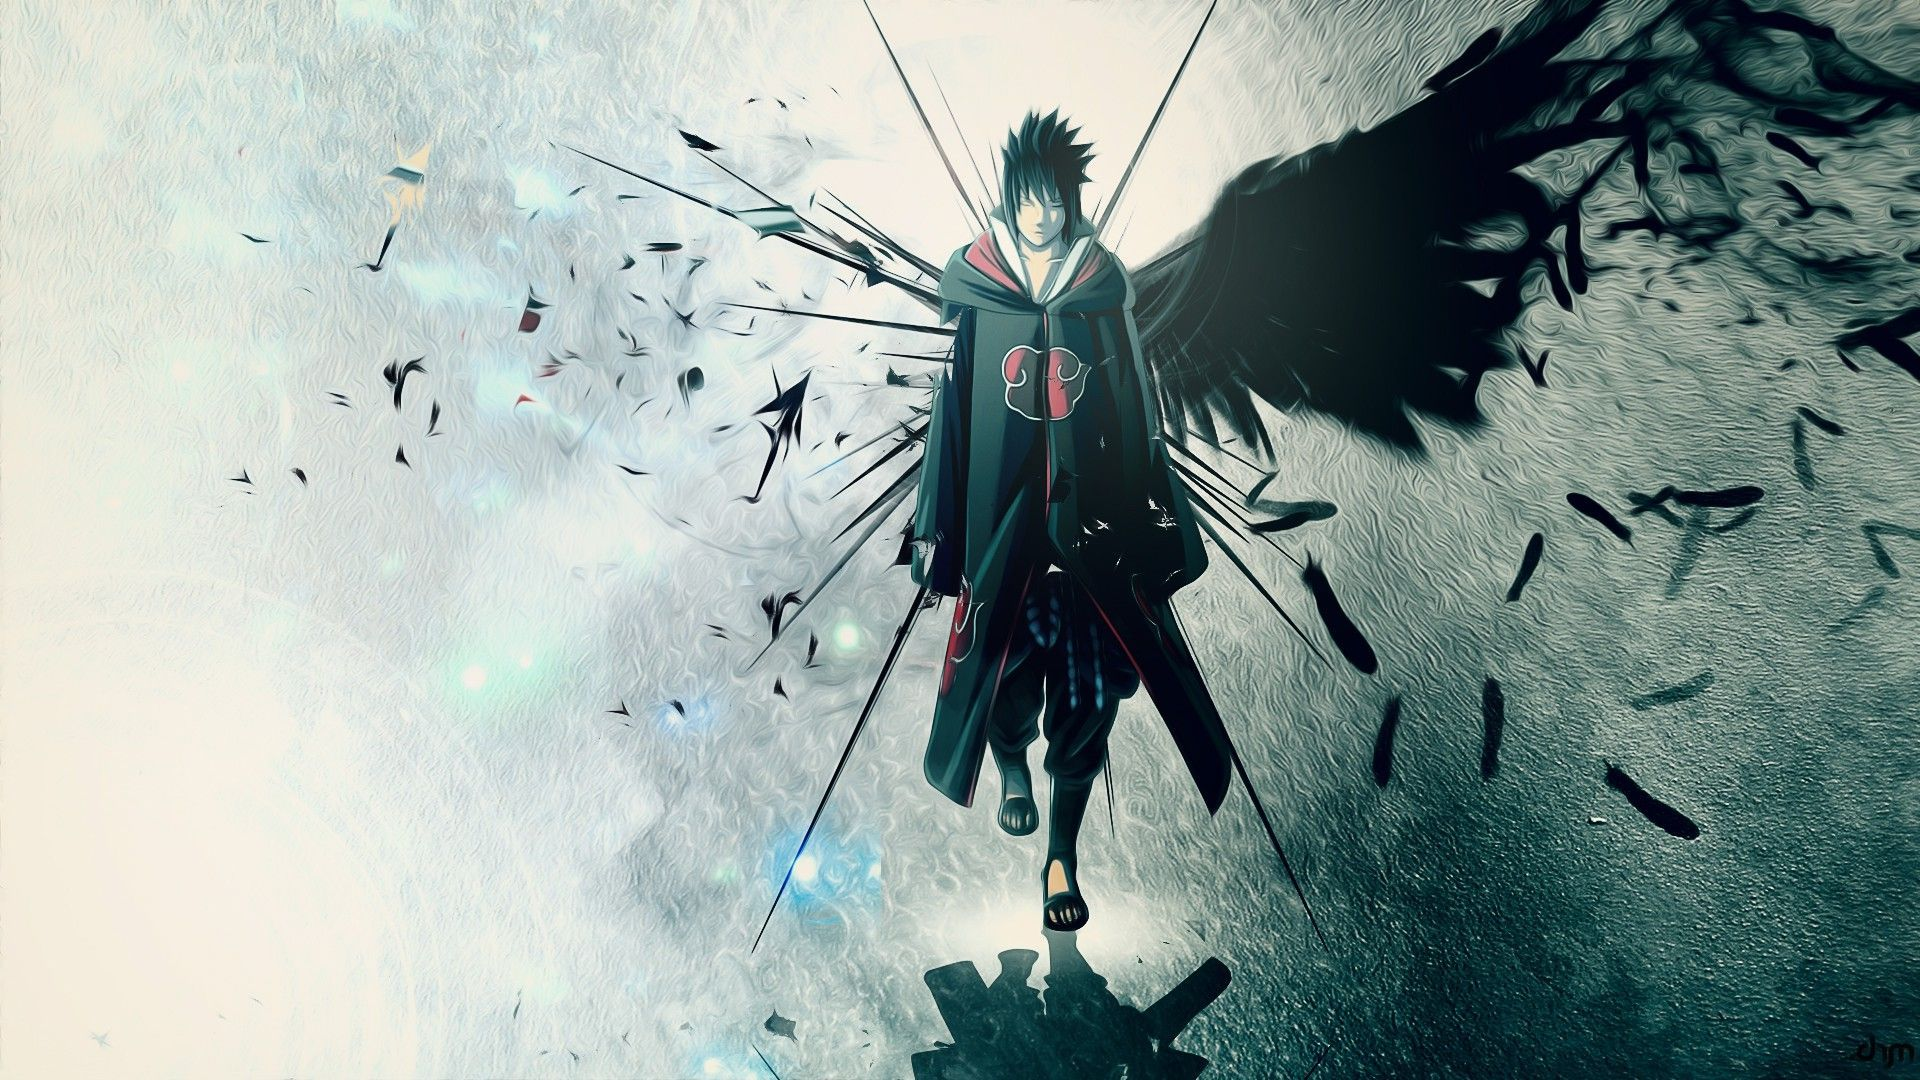 Sasuke Anime Wallpaper Wallpaper WallpaperLepi 1920x1080